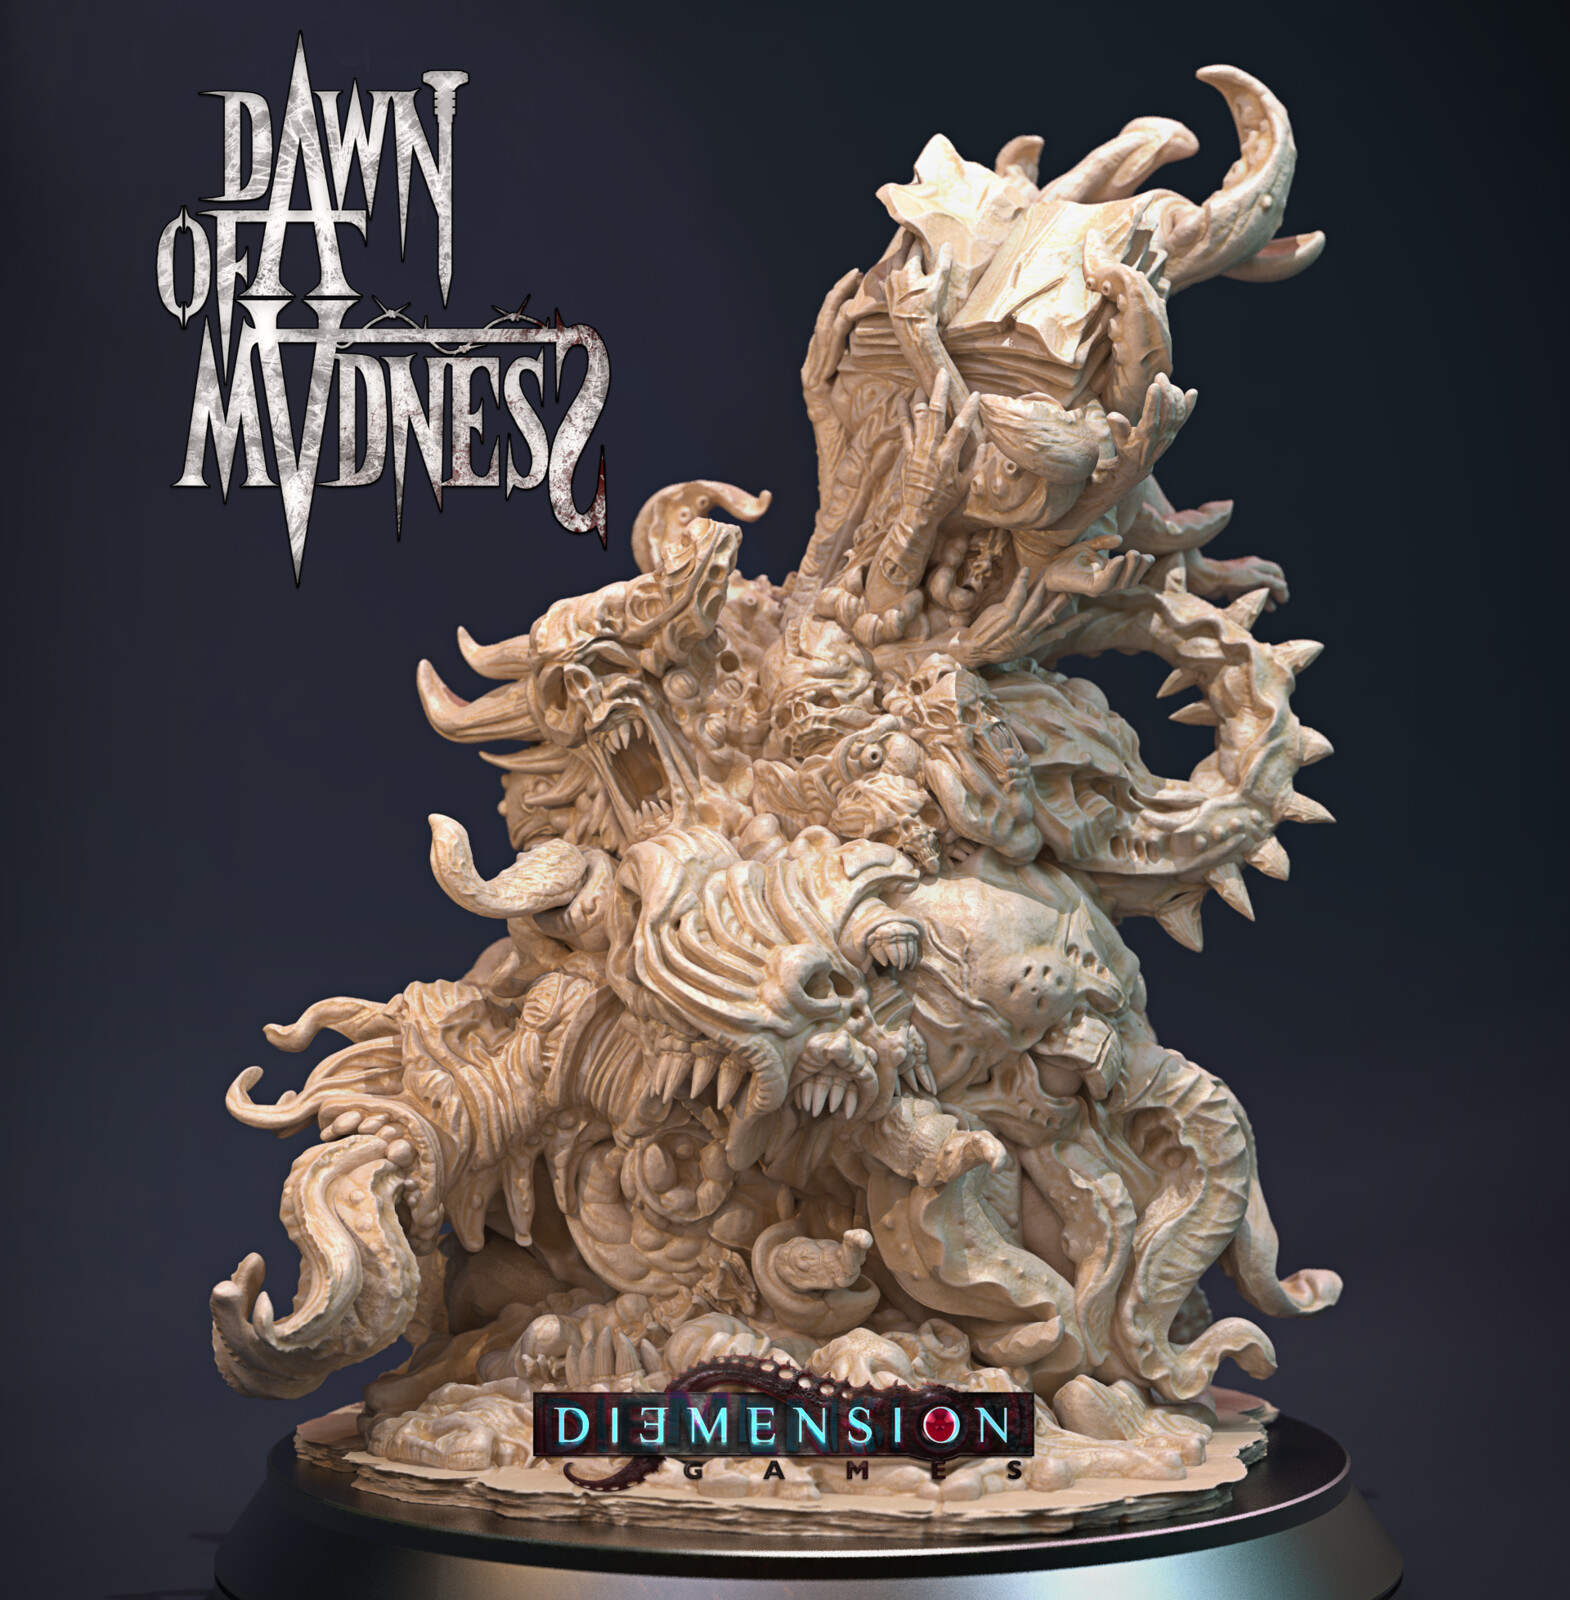 Dawn of Madness Statue Spawns the Cthulhu Mythos